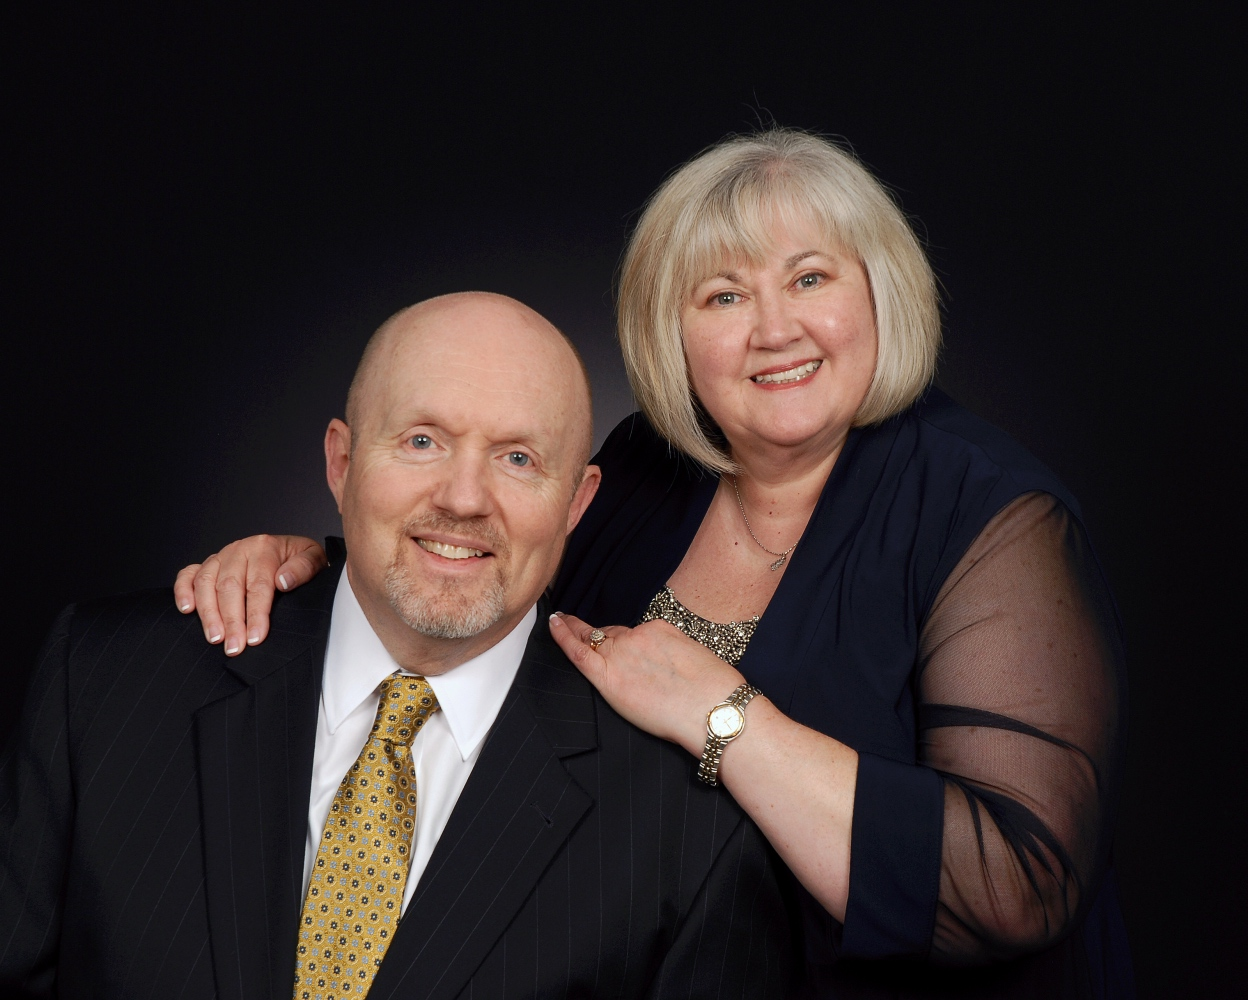 Pastor Greg and Glenna would love to get to know you. -